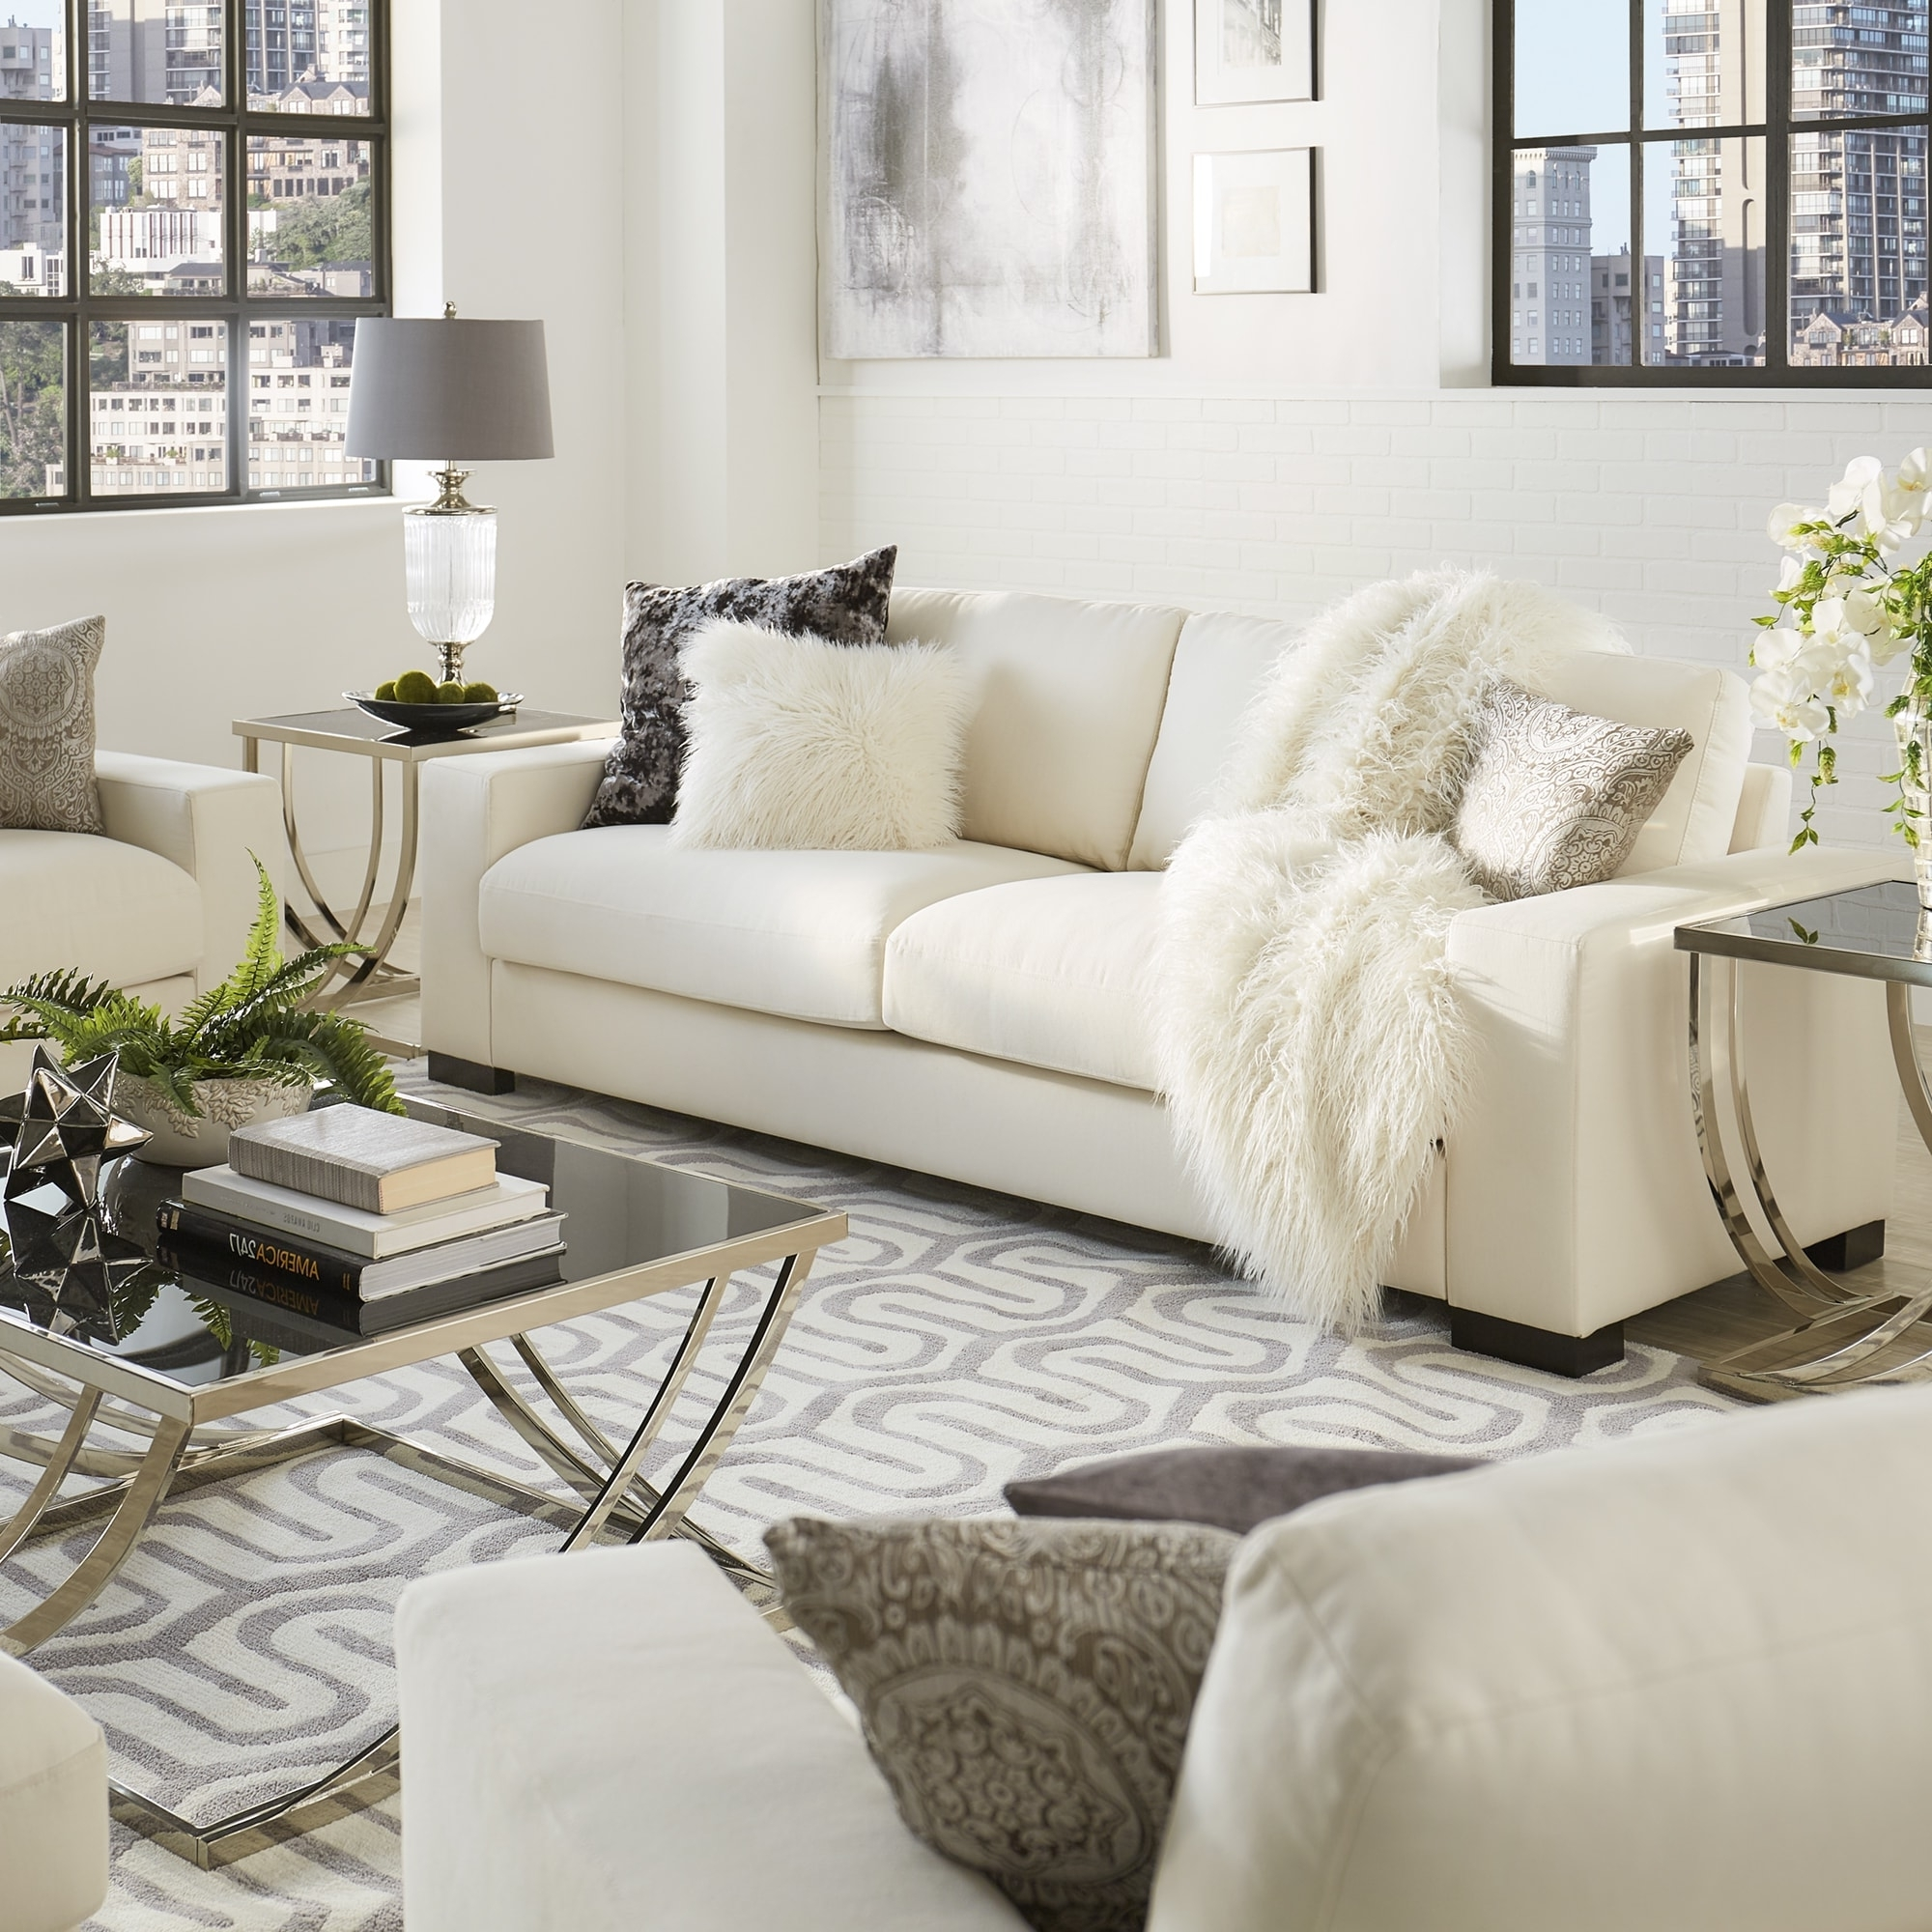 Lionel Modern White Fabric Down Filled Sofainspire Q Artisan Intended For Fashionable Down Filled Sofas (View 9 of 15)